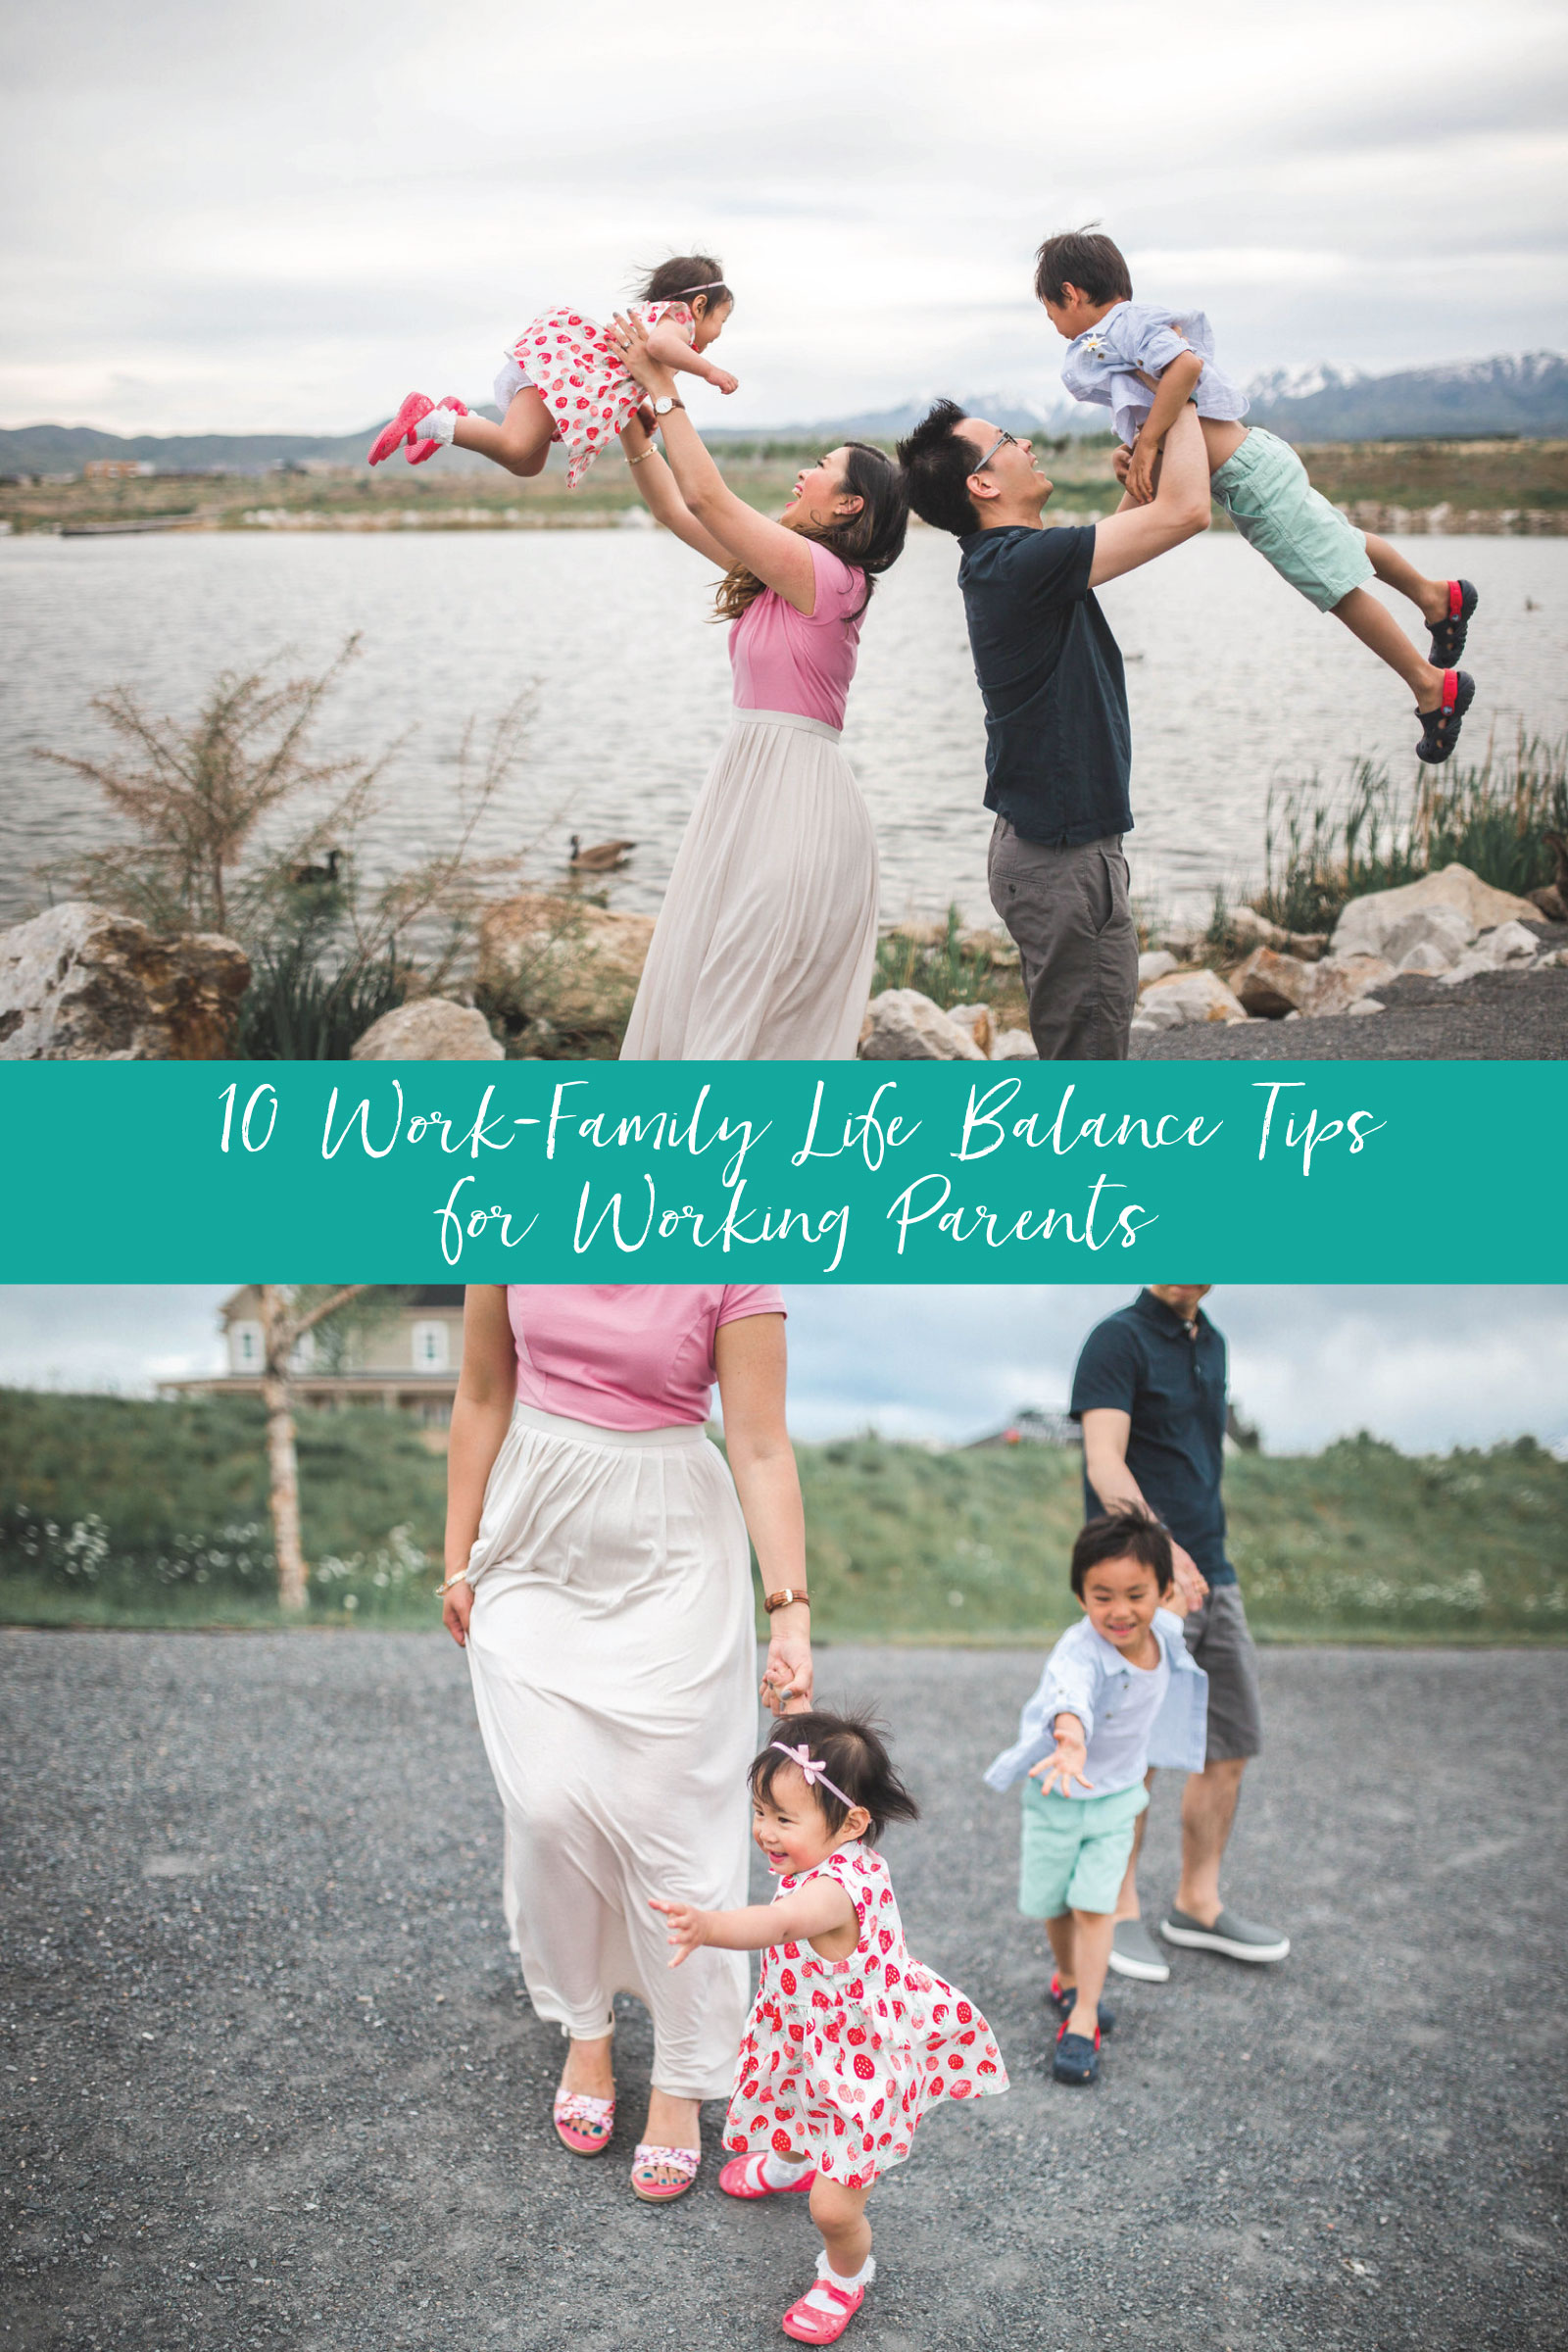 10 Work-Family Life Balance Tips for Working Parents